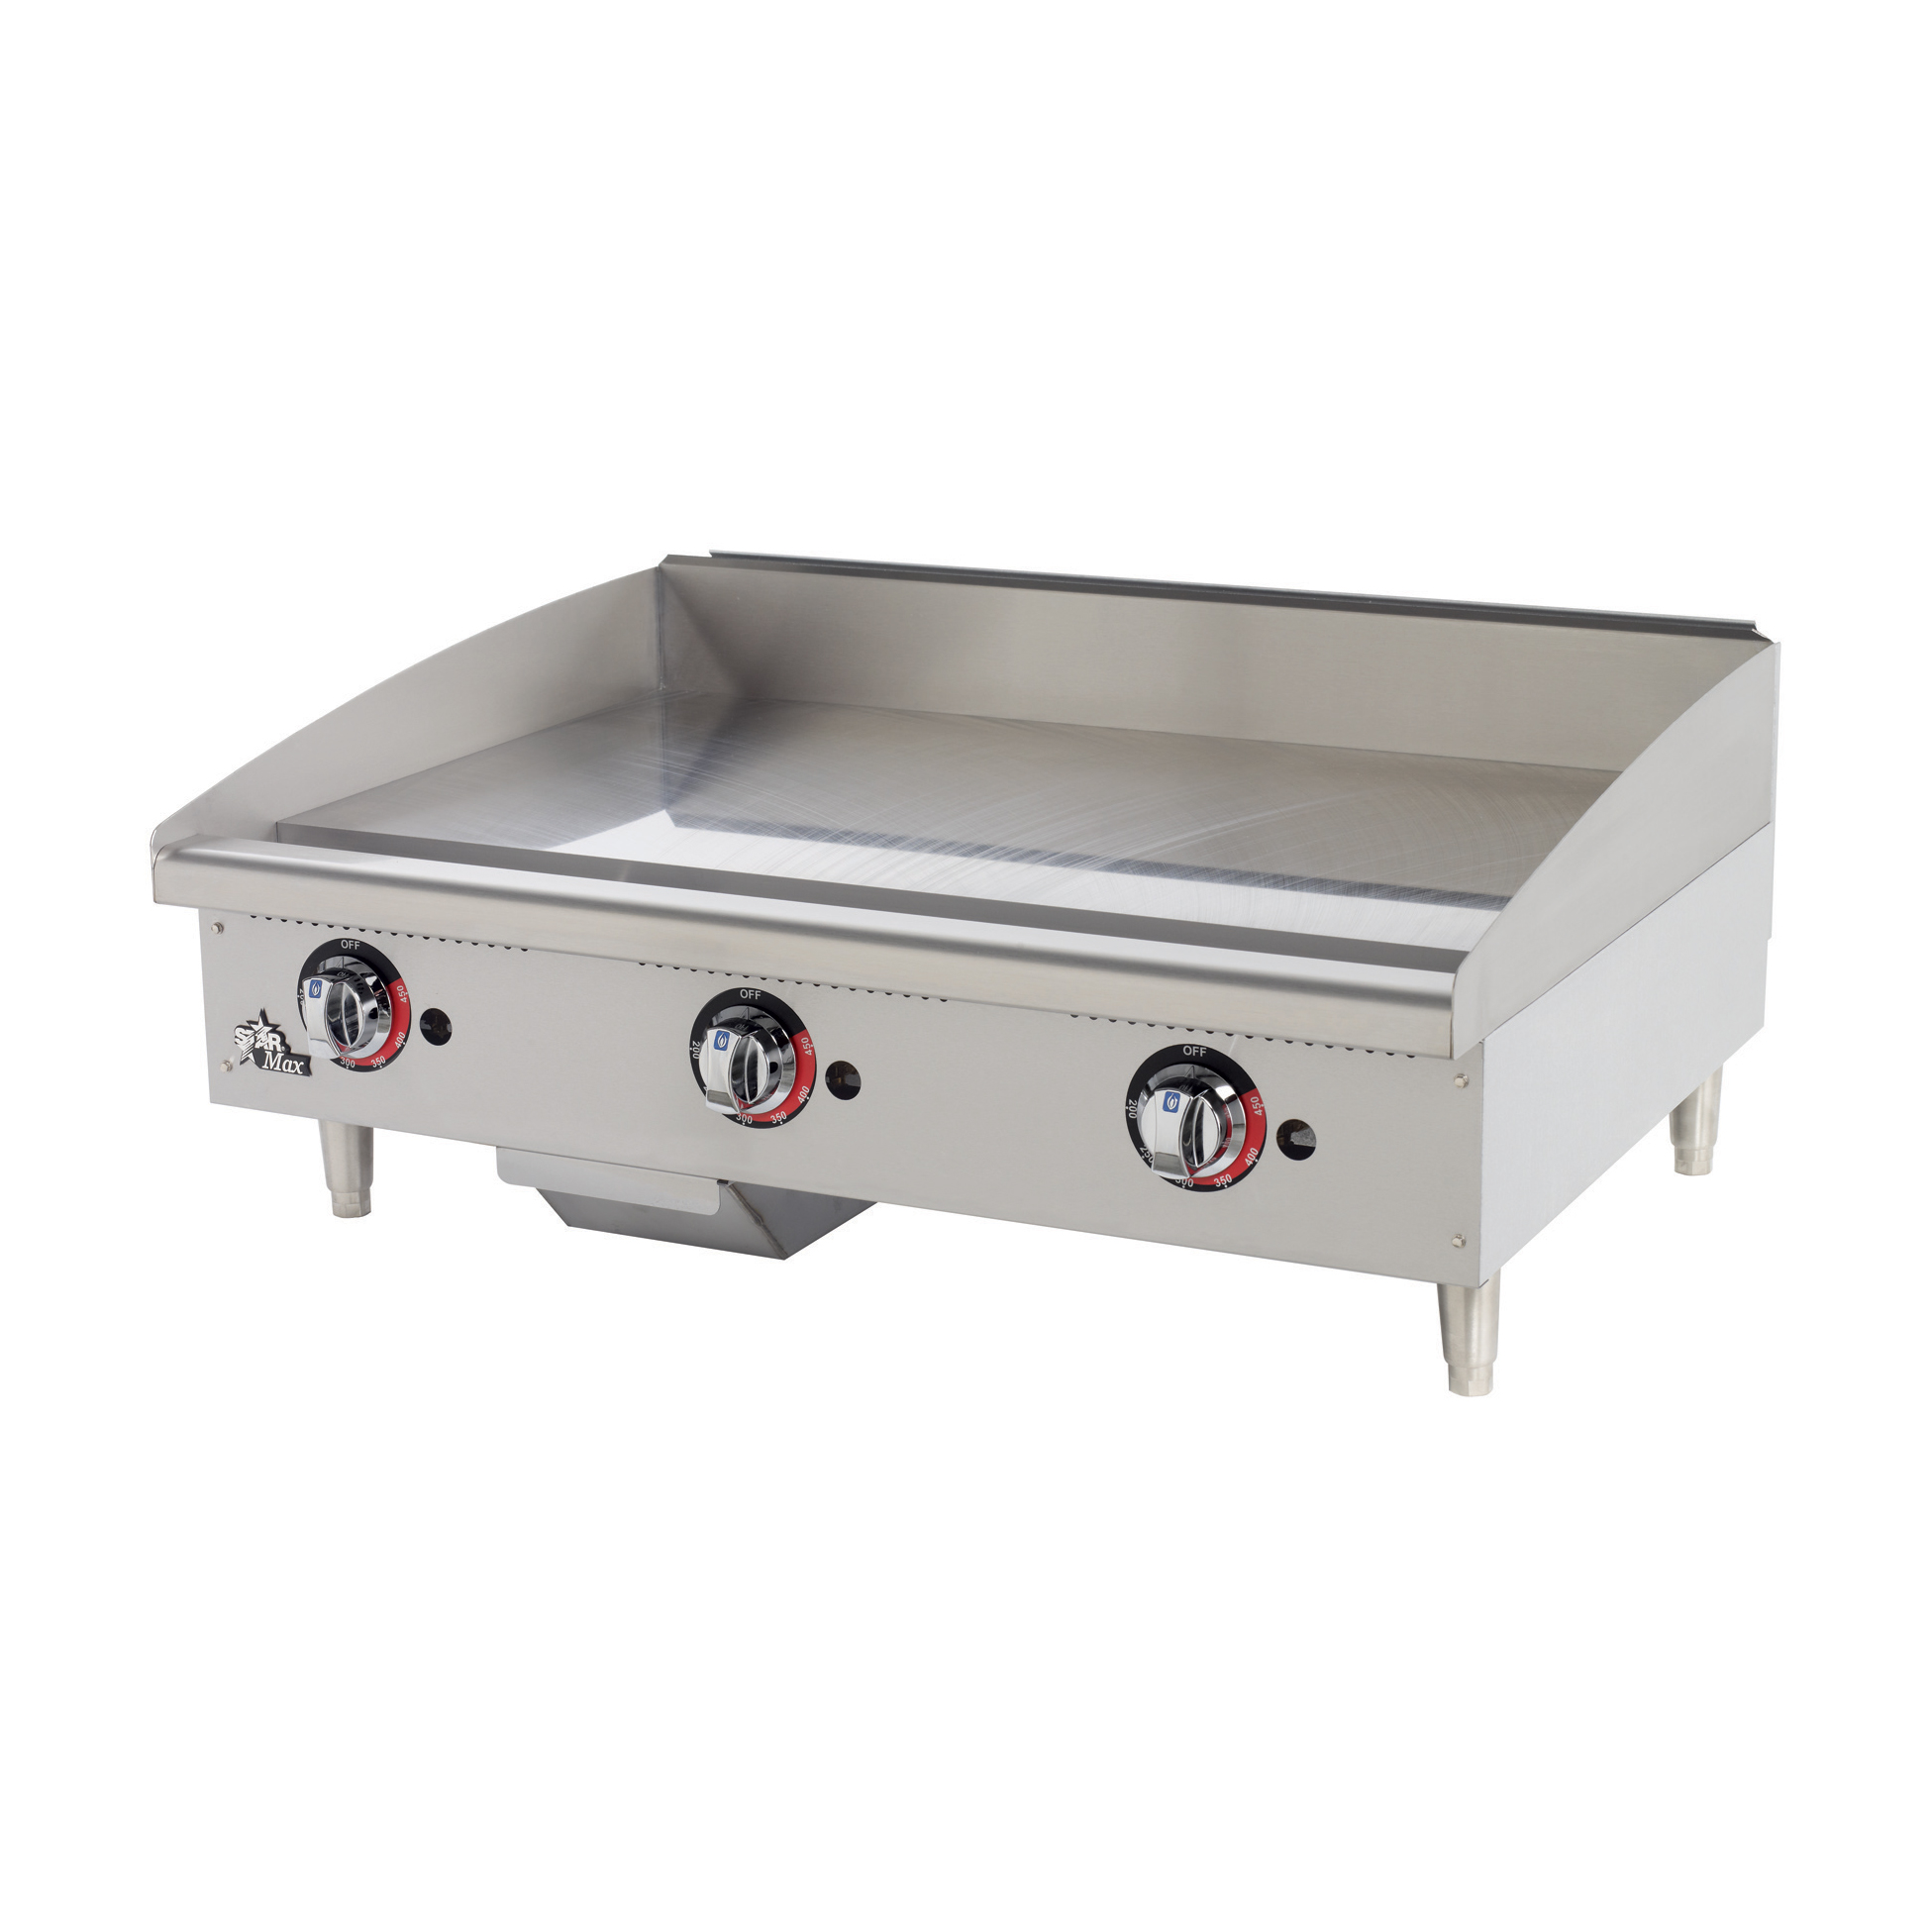 Star 636MF griddle, gas, countertop